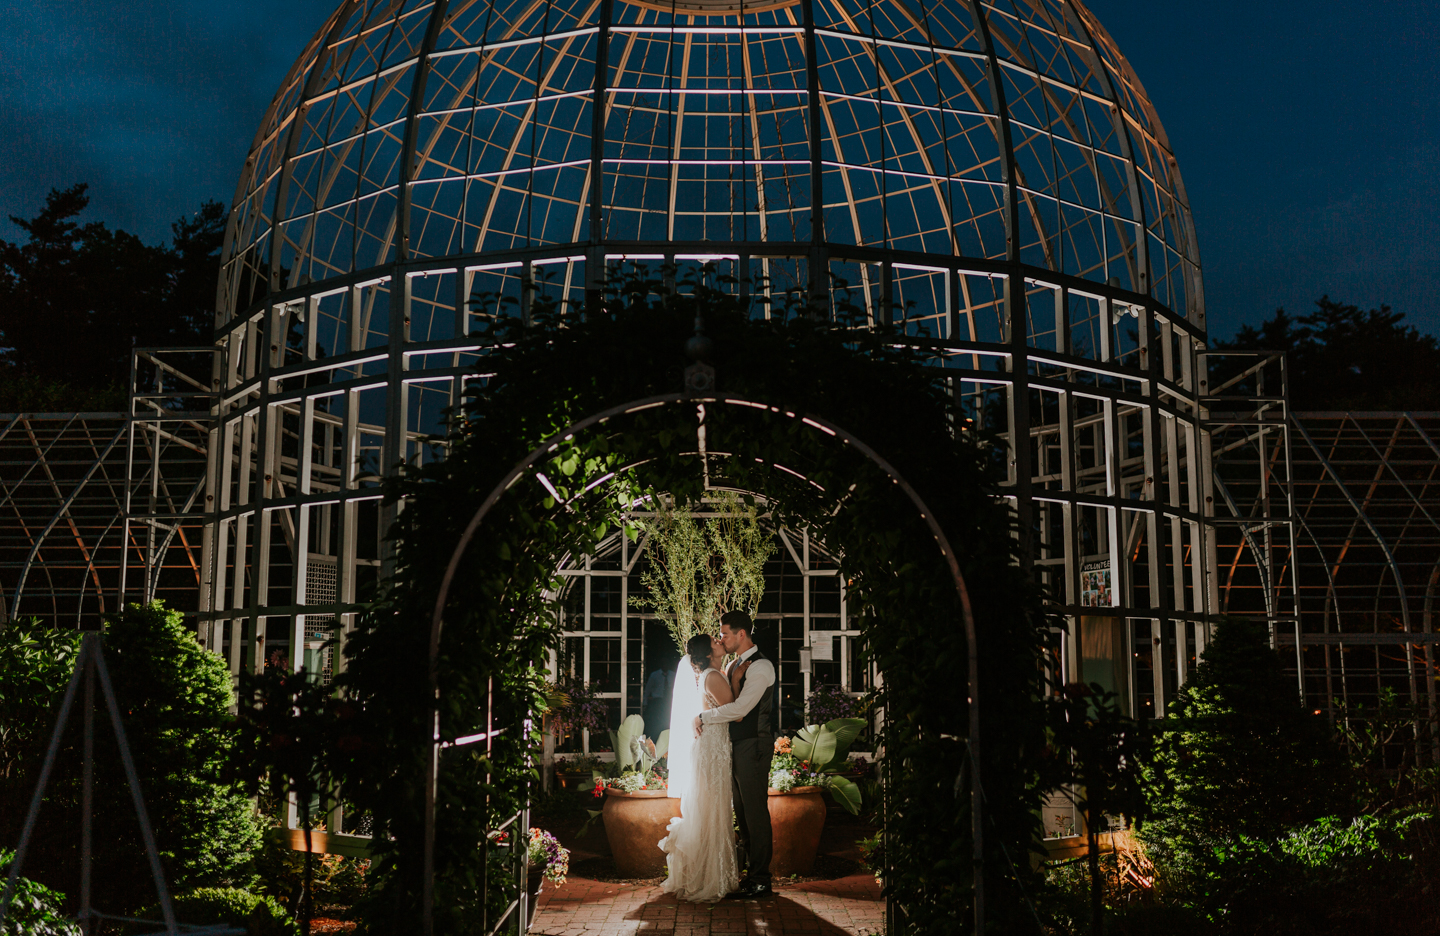 lola-grace-photography-taylor-botanical-gardens-wedding-56.jpg